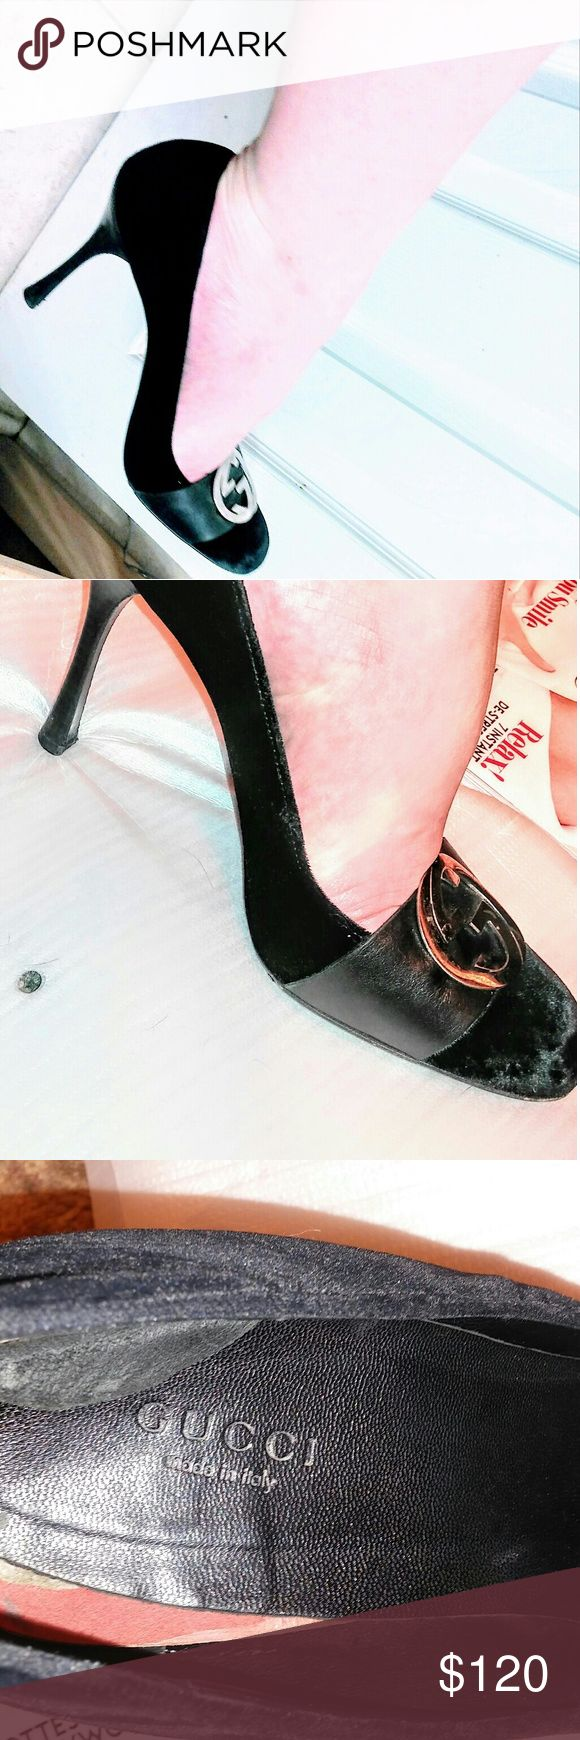 Gucci vintage pumps size 39 or US size 9.5 These are authentic Gucci made in Italy pumps. Velvety material. High heel. Comfortable to walk in. One shoe insole is coming off a bit as you may swe in the photo. It could be fixed tho. The bottoms have the usual scuffs nothing major. The hills are in tackt. Size 9 or 9.5. Gucci Shoes Heels